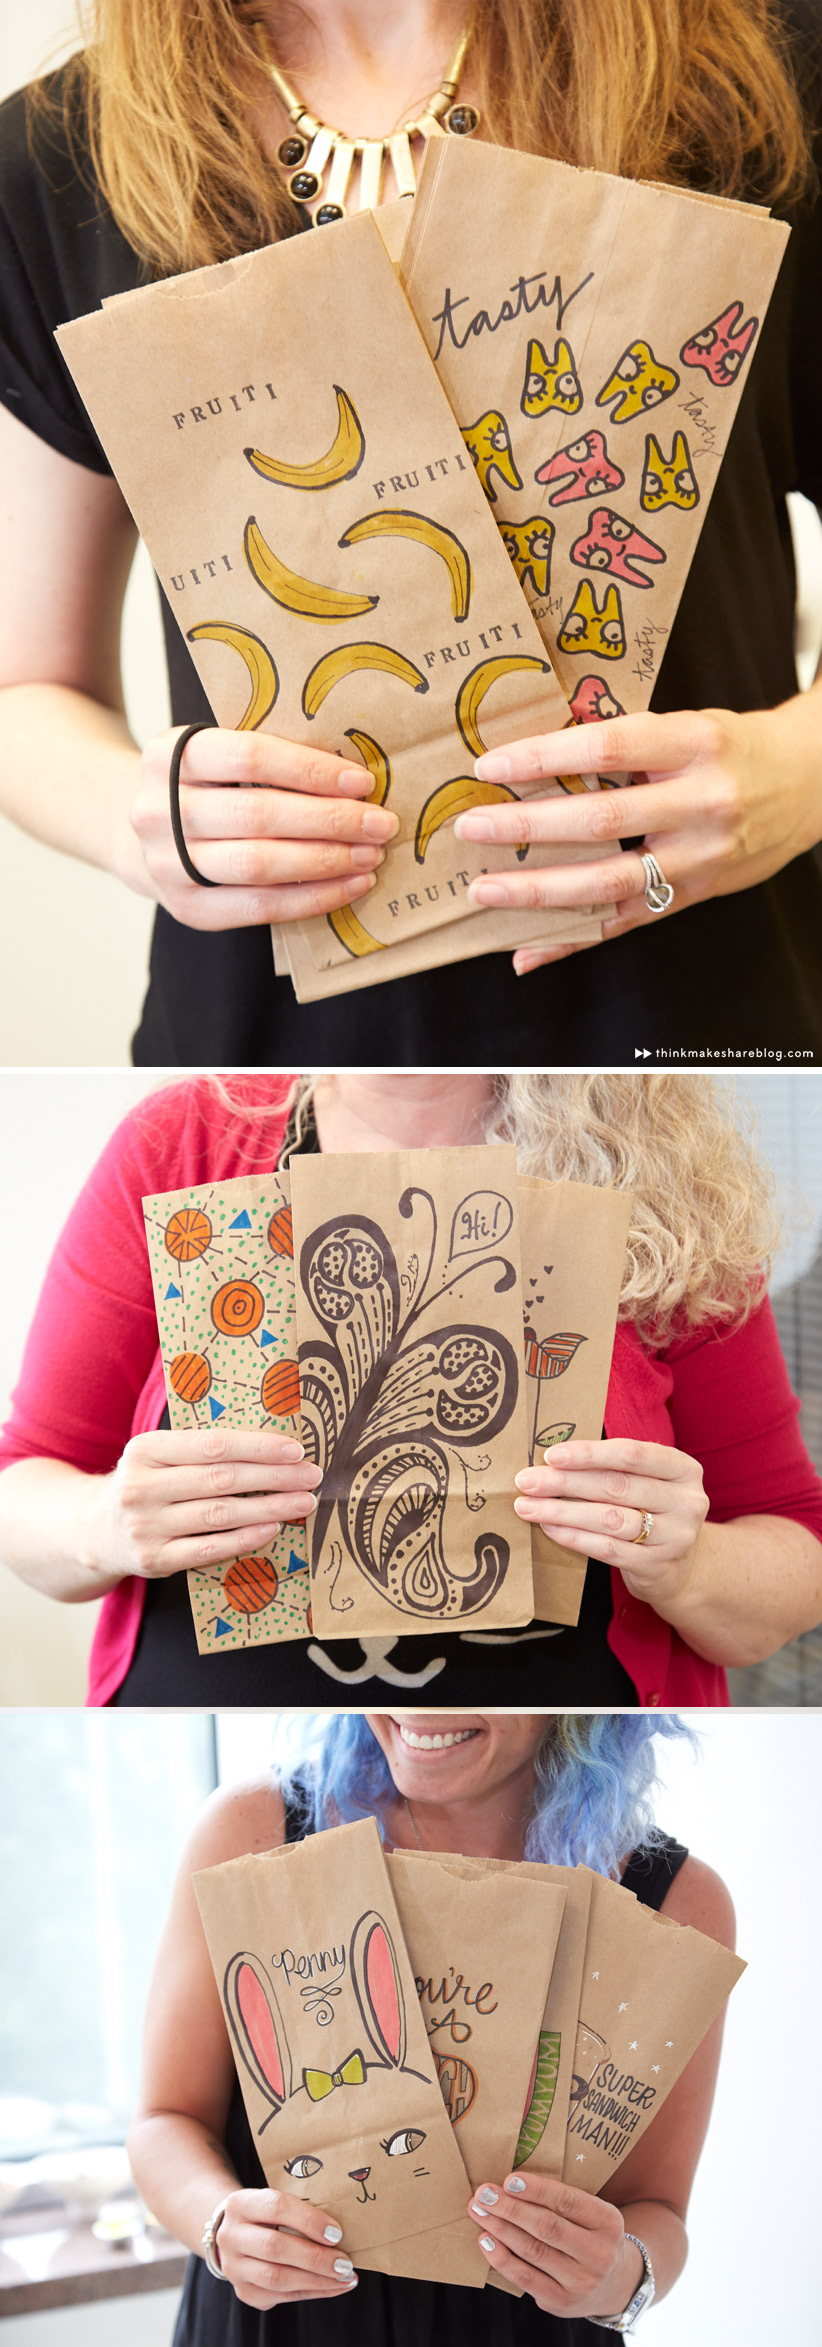 ... Creative Lunch Bag Decorating Ideas with Hallmark artists | thinkmakeshareblog.com ... & Back to school with creative lunch bags and totes - Think.Make.Share.